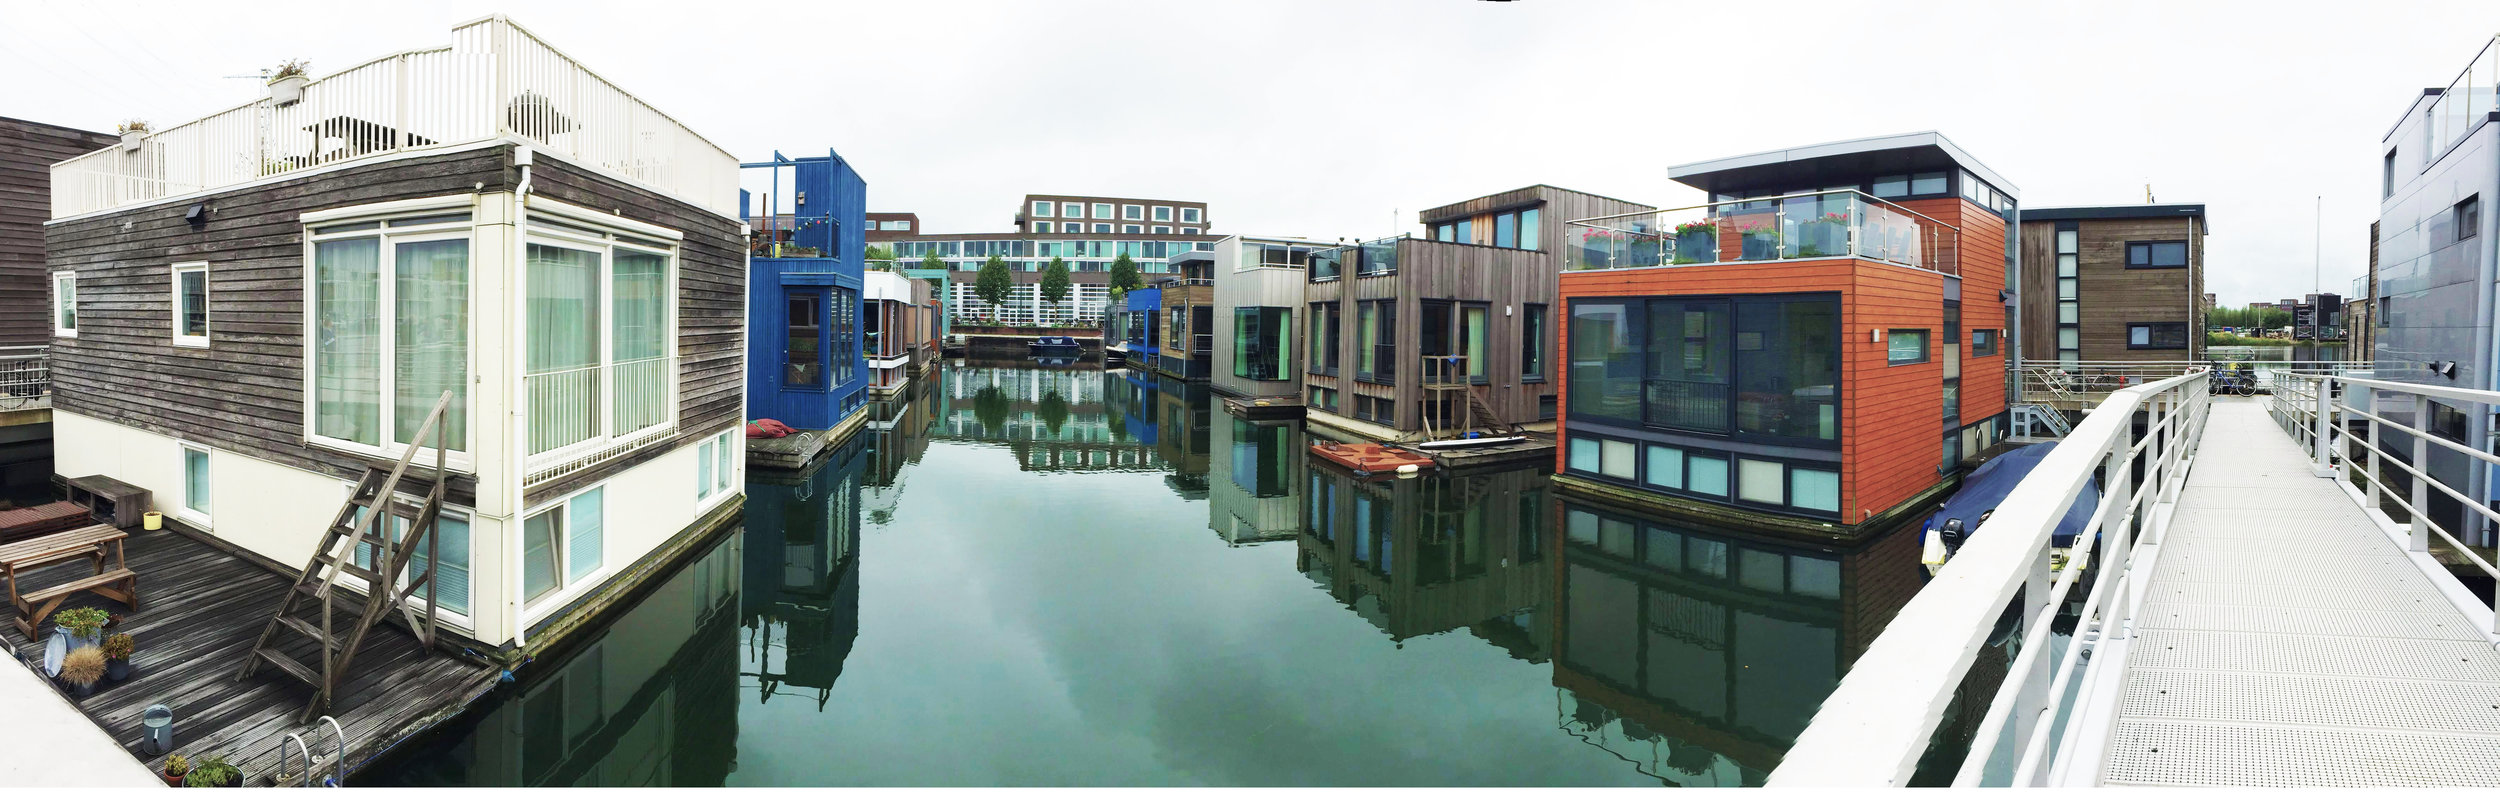 IJburg consists of man-made islands connected by bridges.